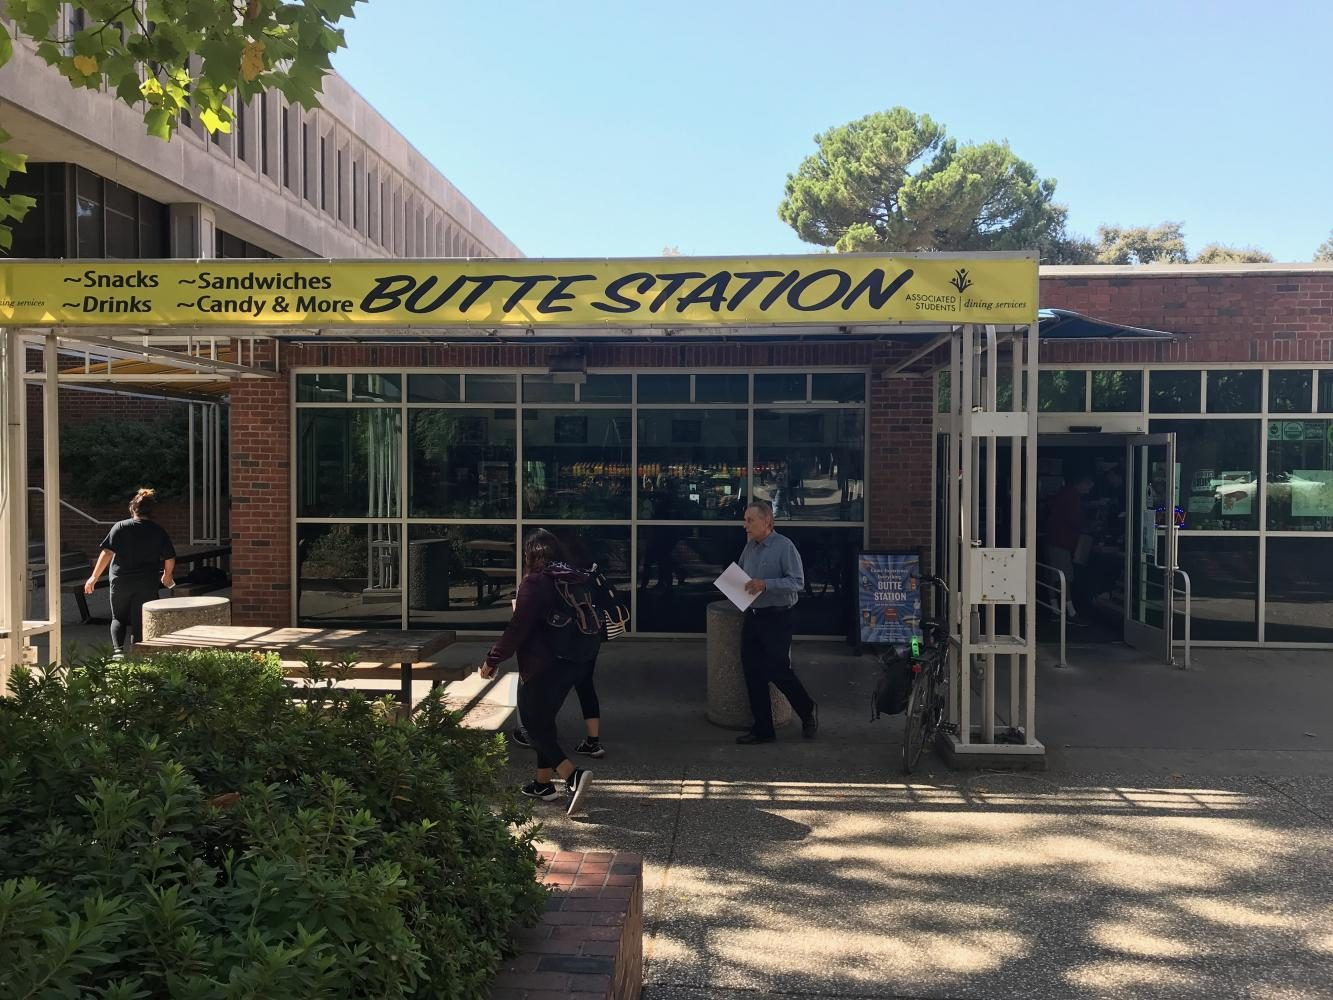 Butte+station+is+the+place+for+students+and+faculty++to+stop+and+grab+a+quick+snack.